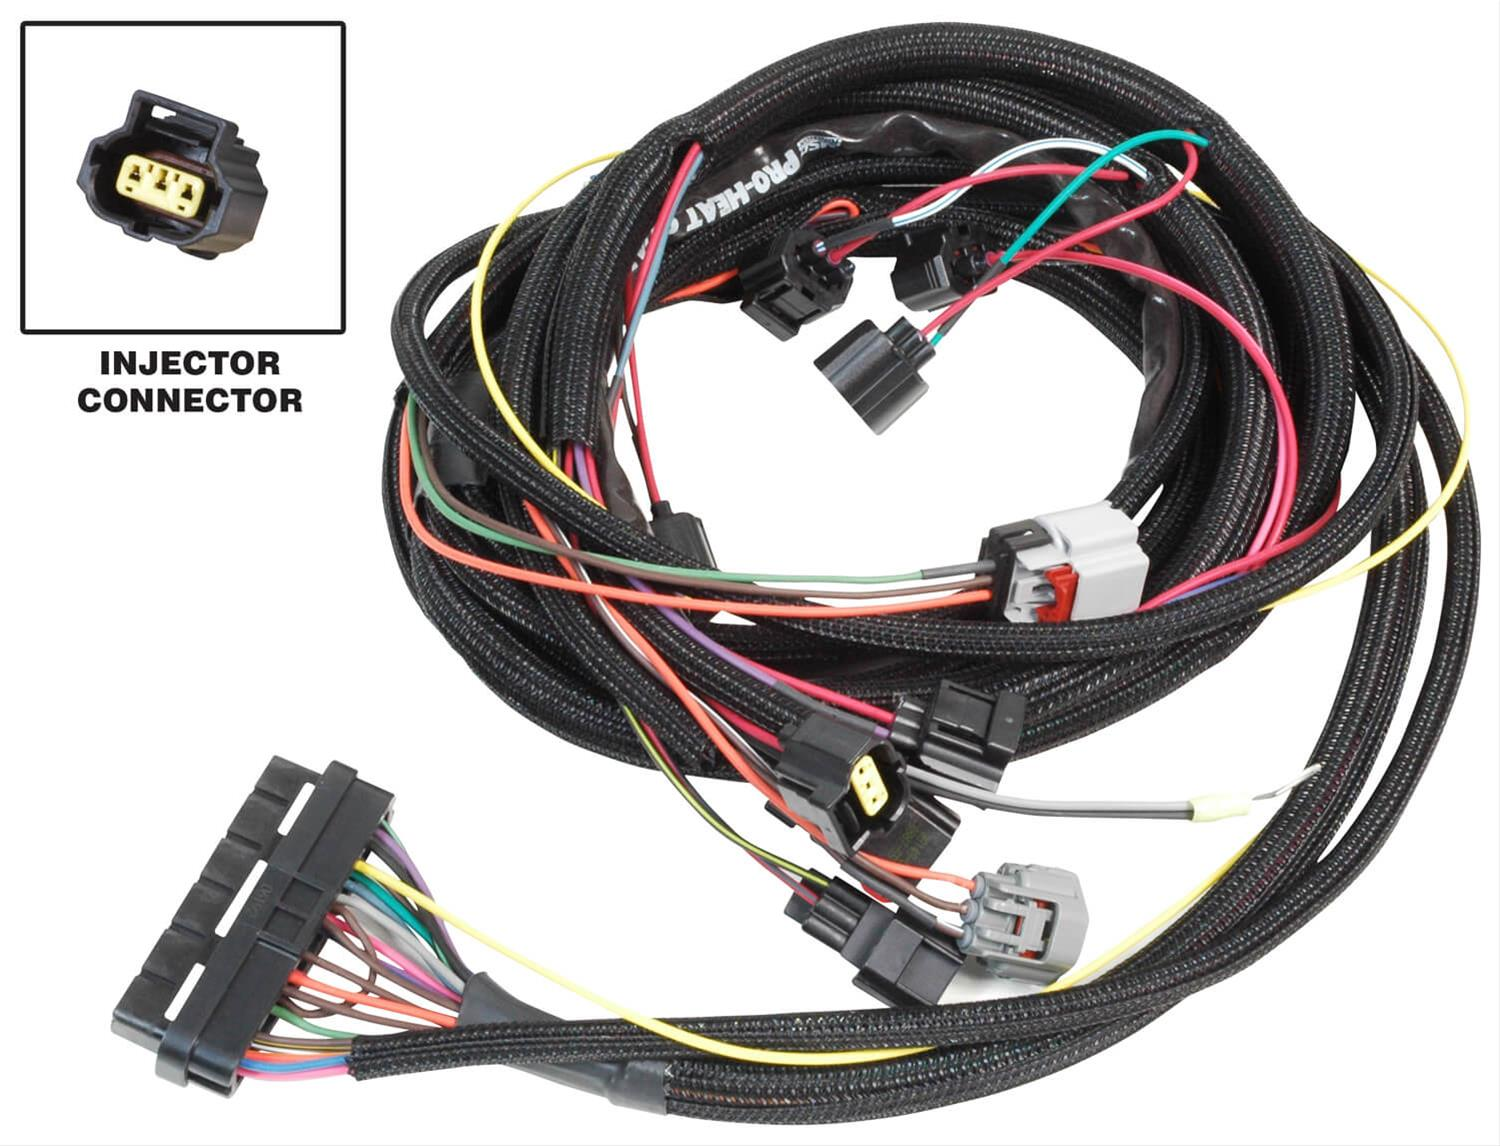 Msd ignition extension wiring harnesses free